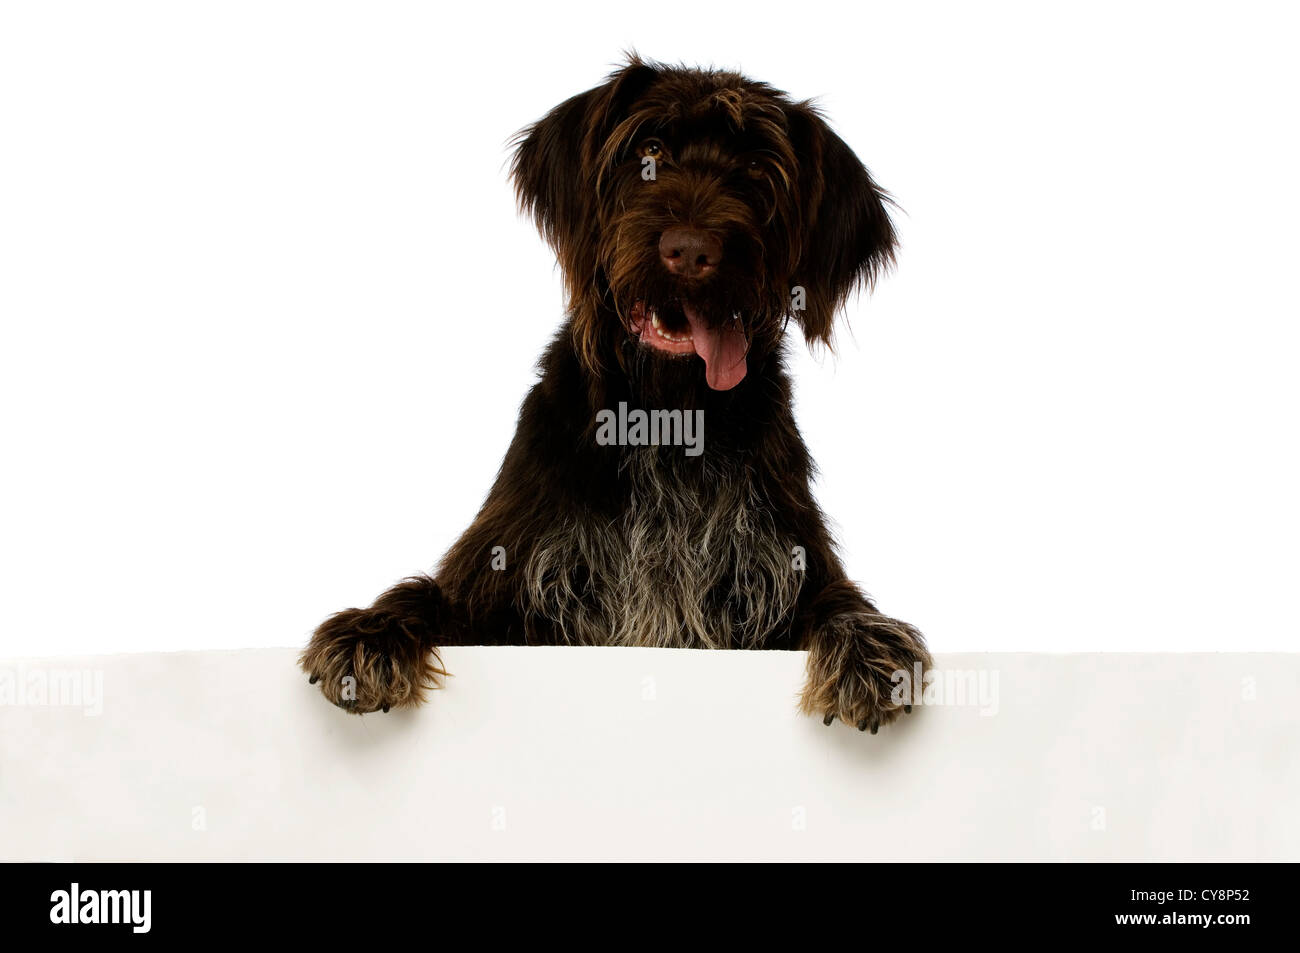 German Wire Hair Pointer Dog isolated on a white background - Stock Image